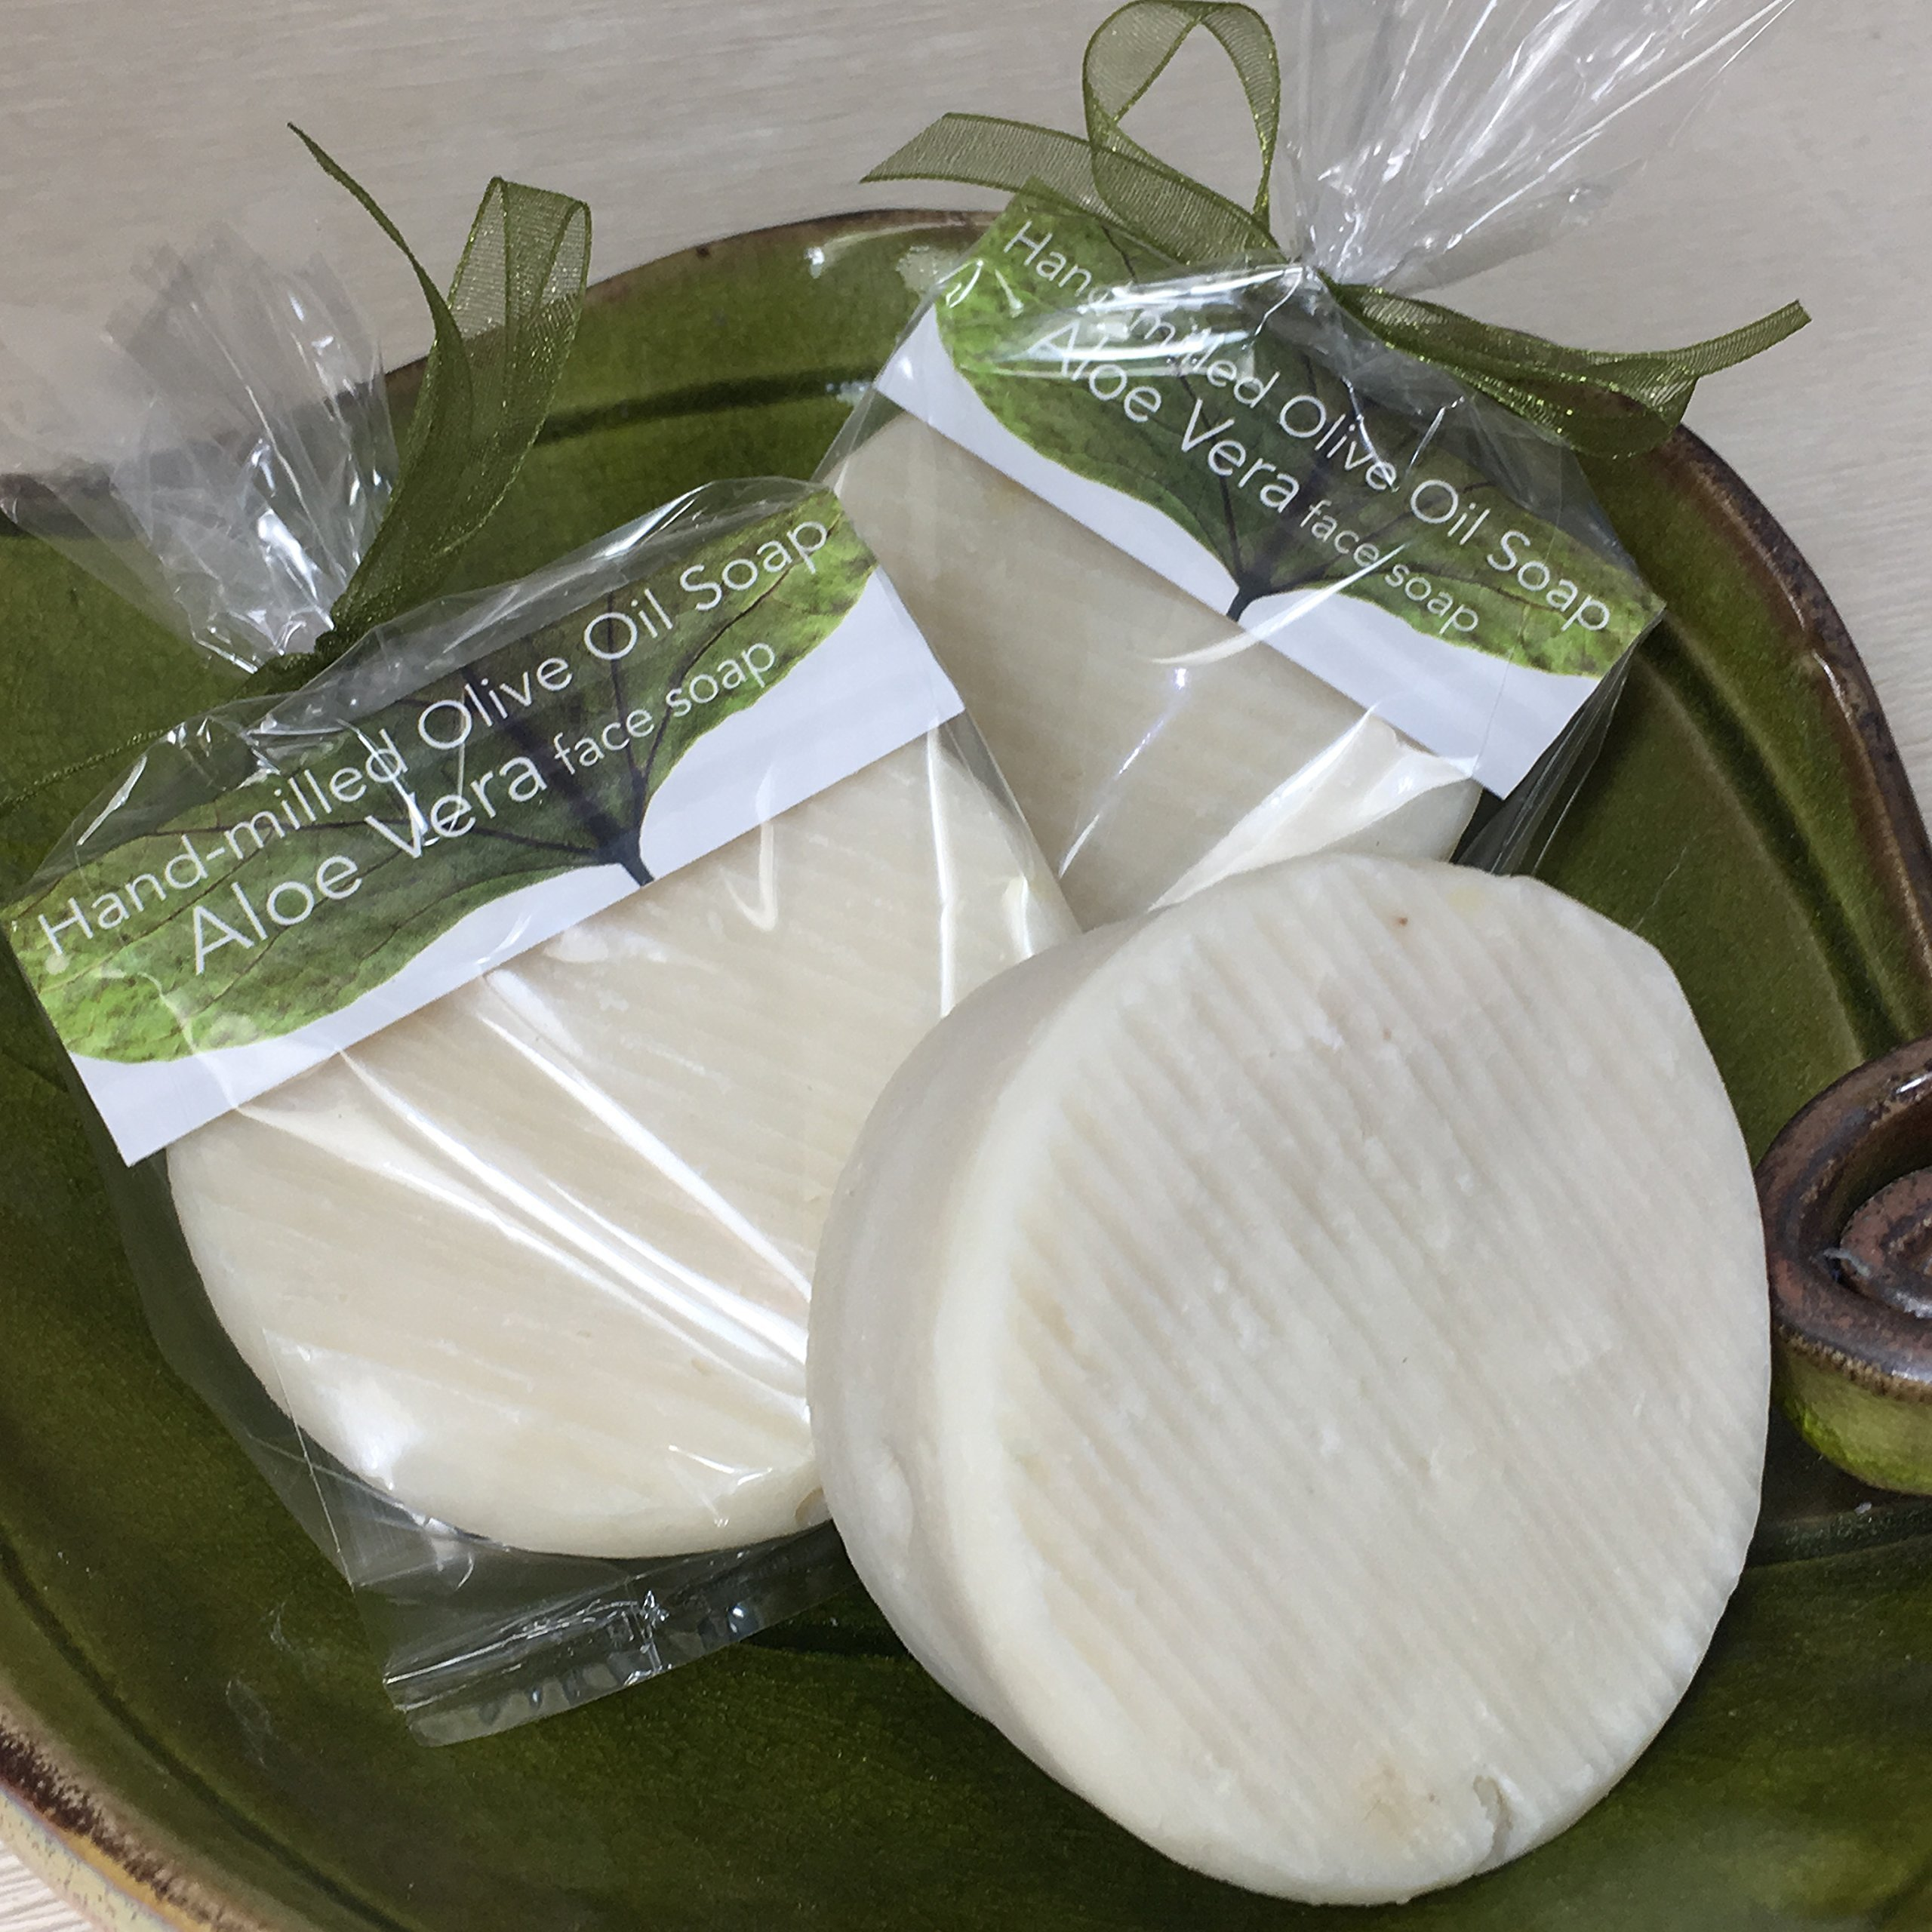 JANECKA Aloe Vera Round Soap / Artisan Crafted Gentle Soap / Unscented ( Set of 3 )